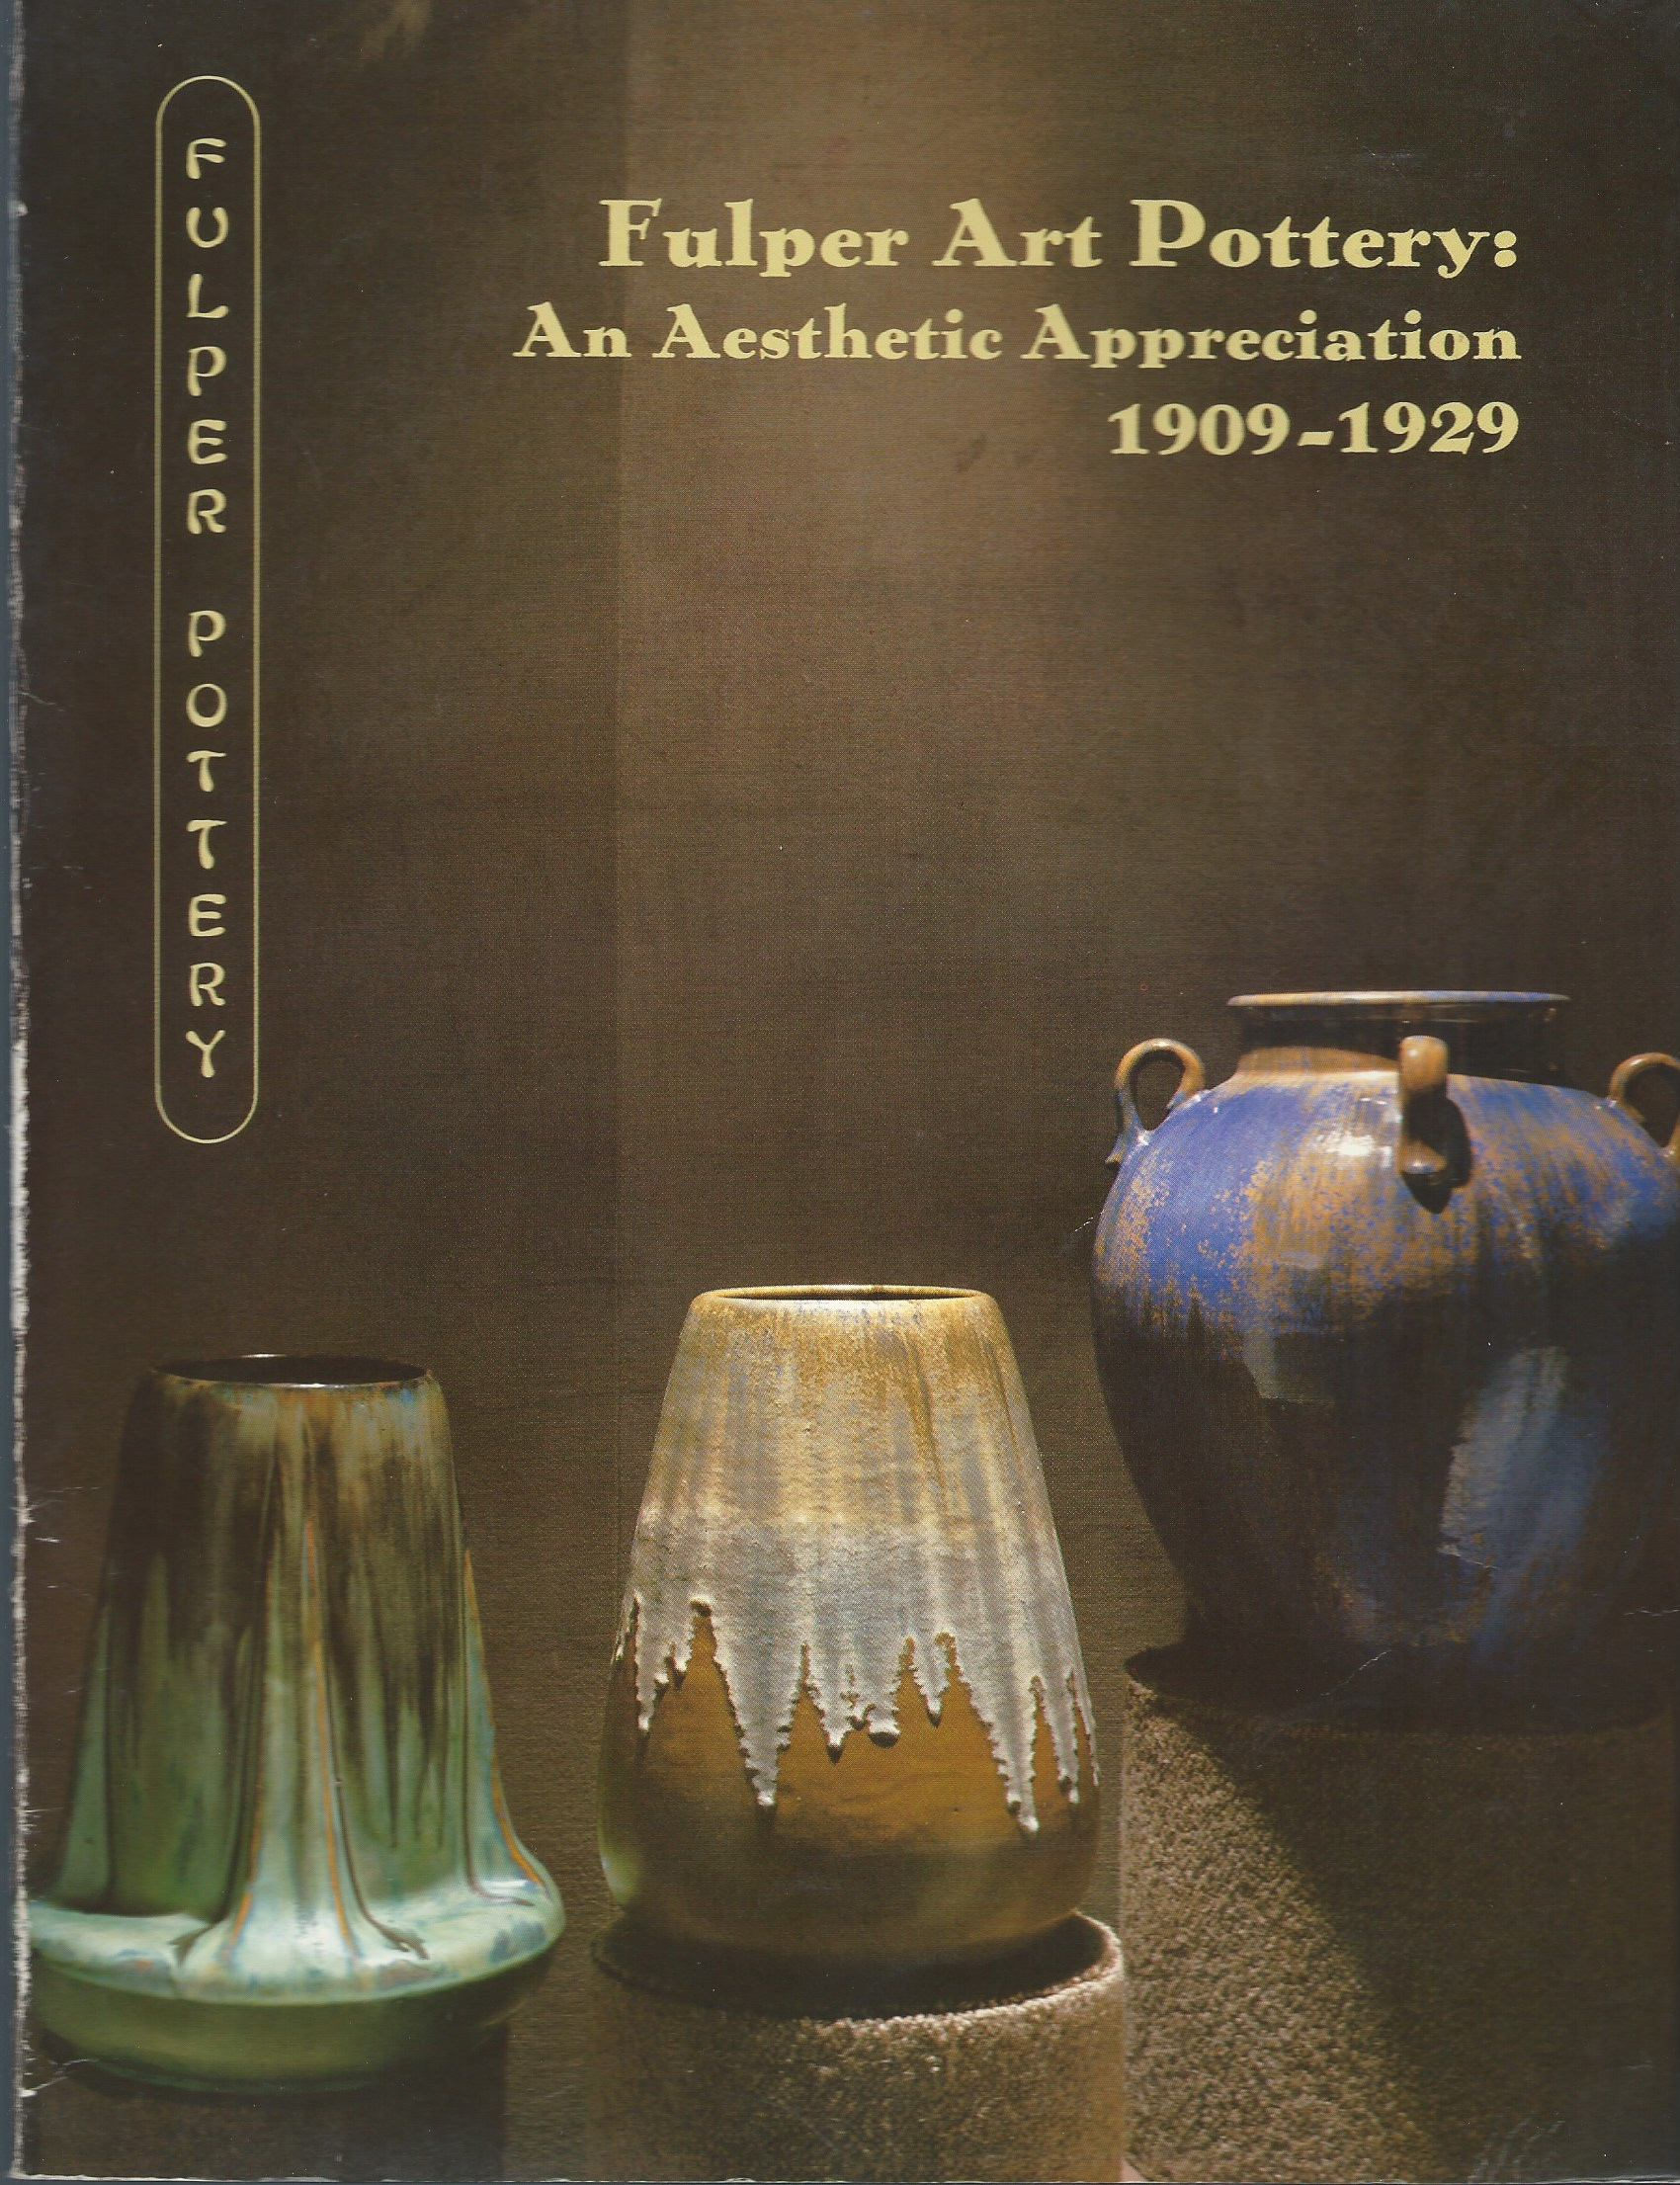 Image for An Aesthetic Appreciation 1909-1929; FULPER ART POTTERY: